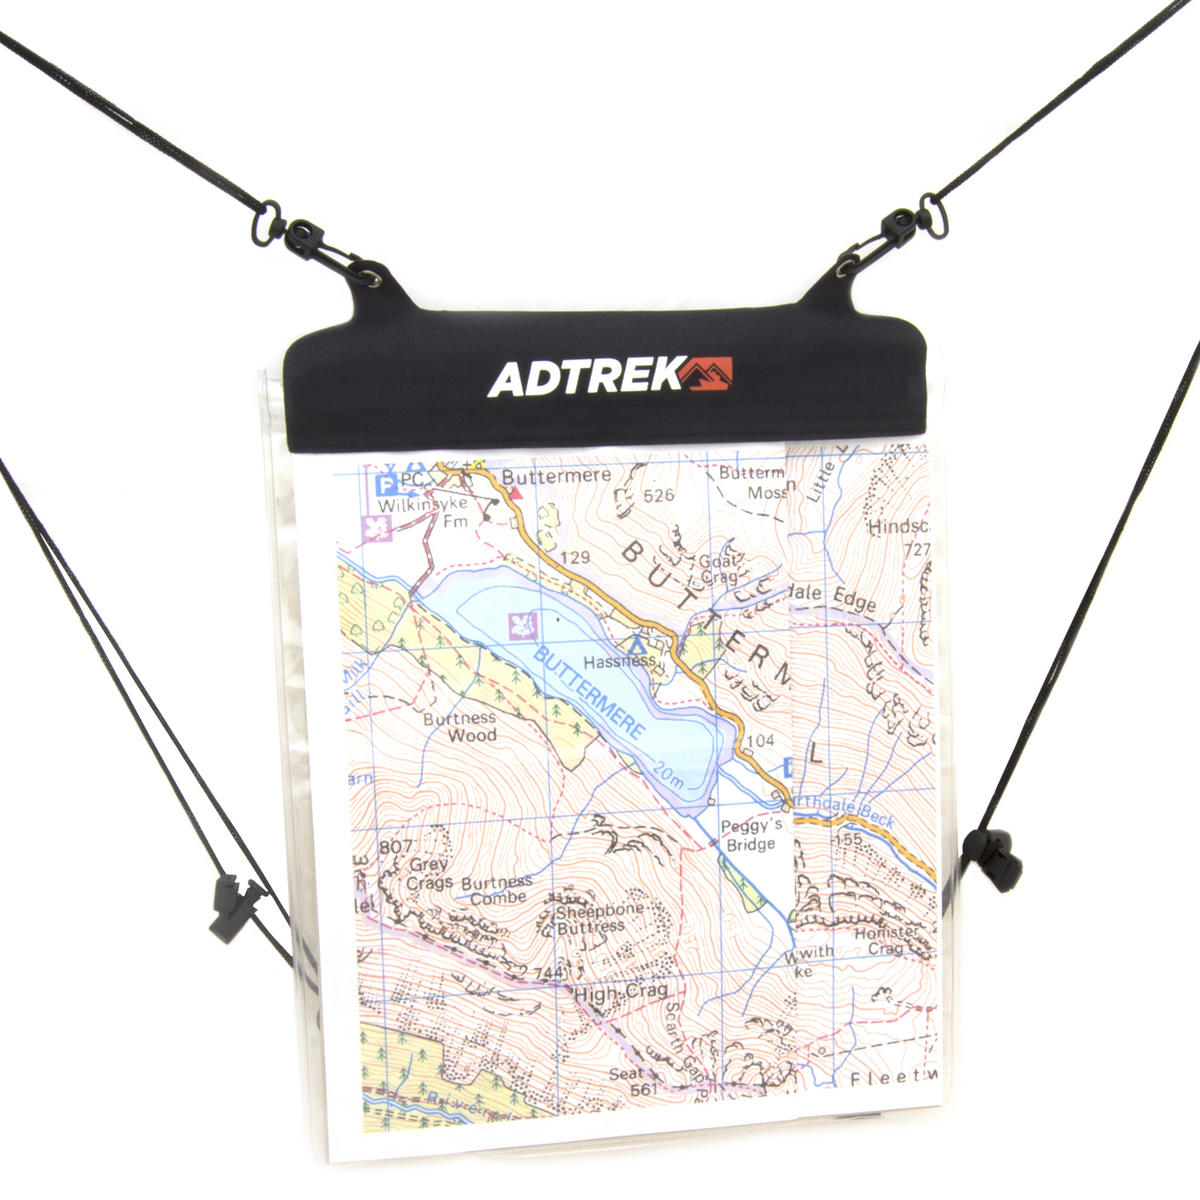 Adtrek Waterproof Map Case